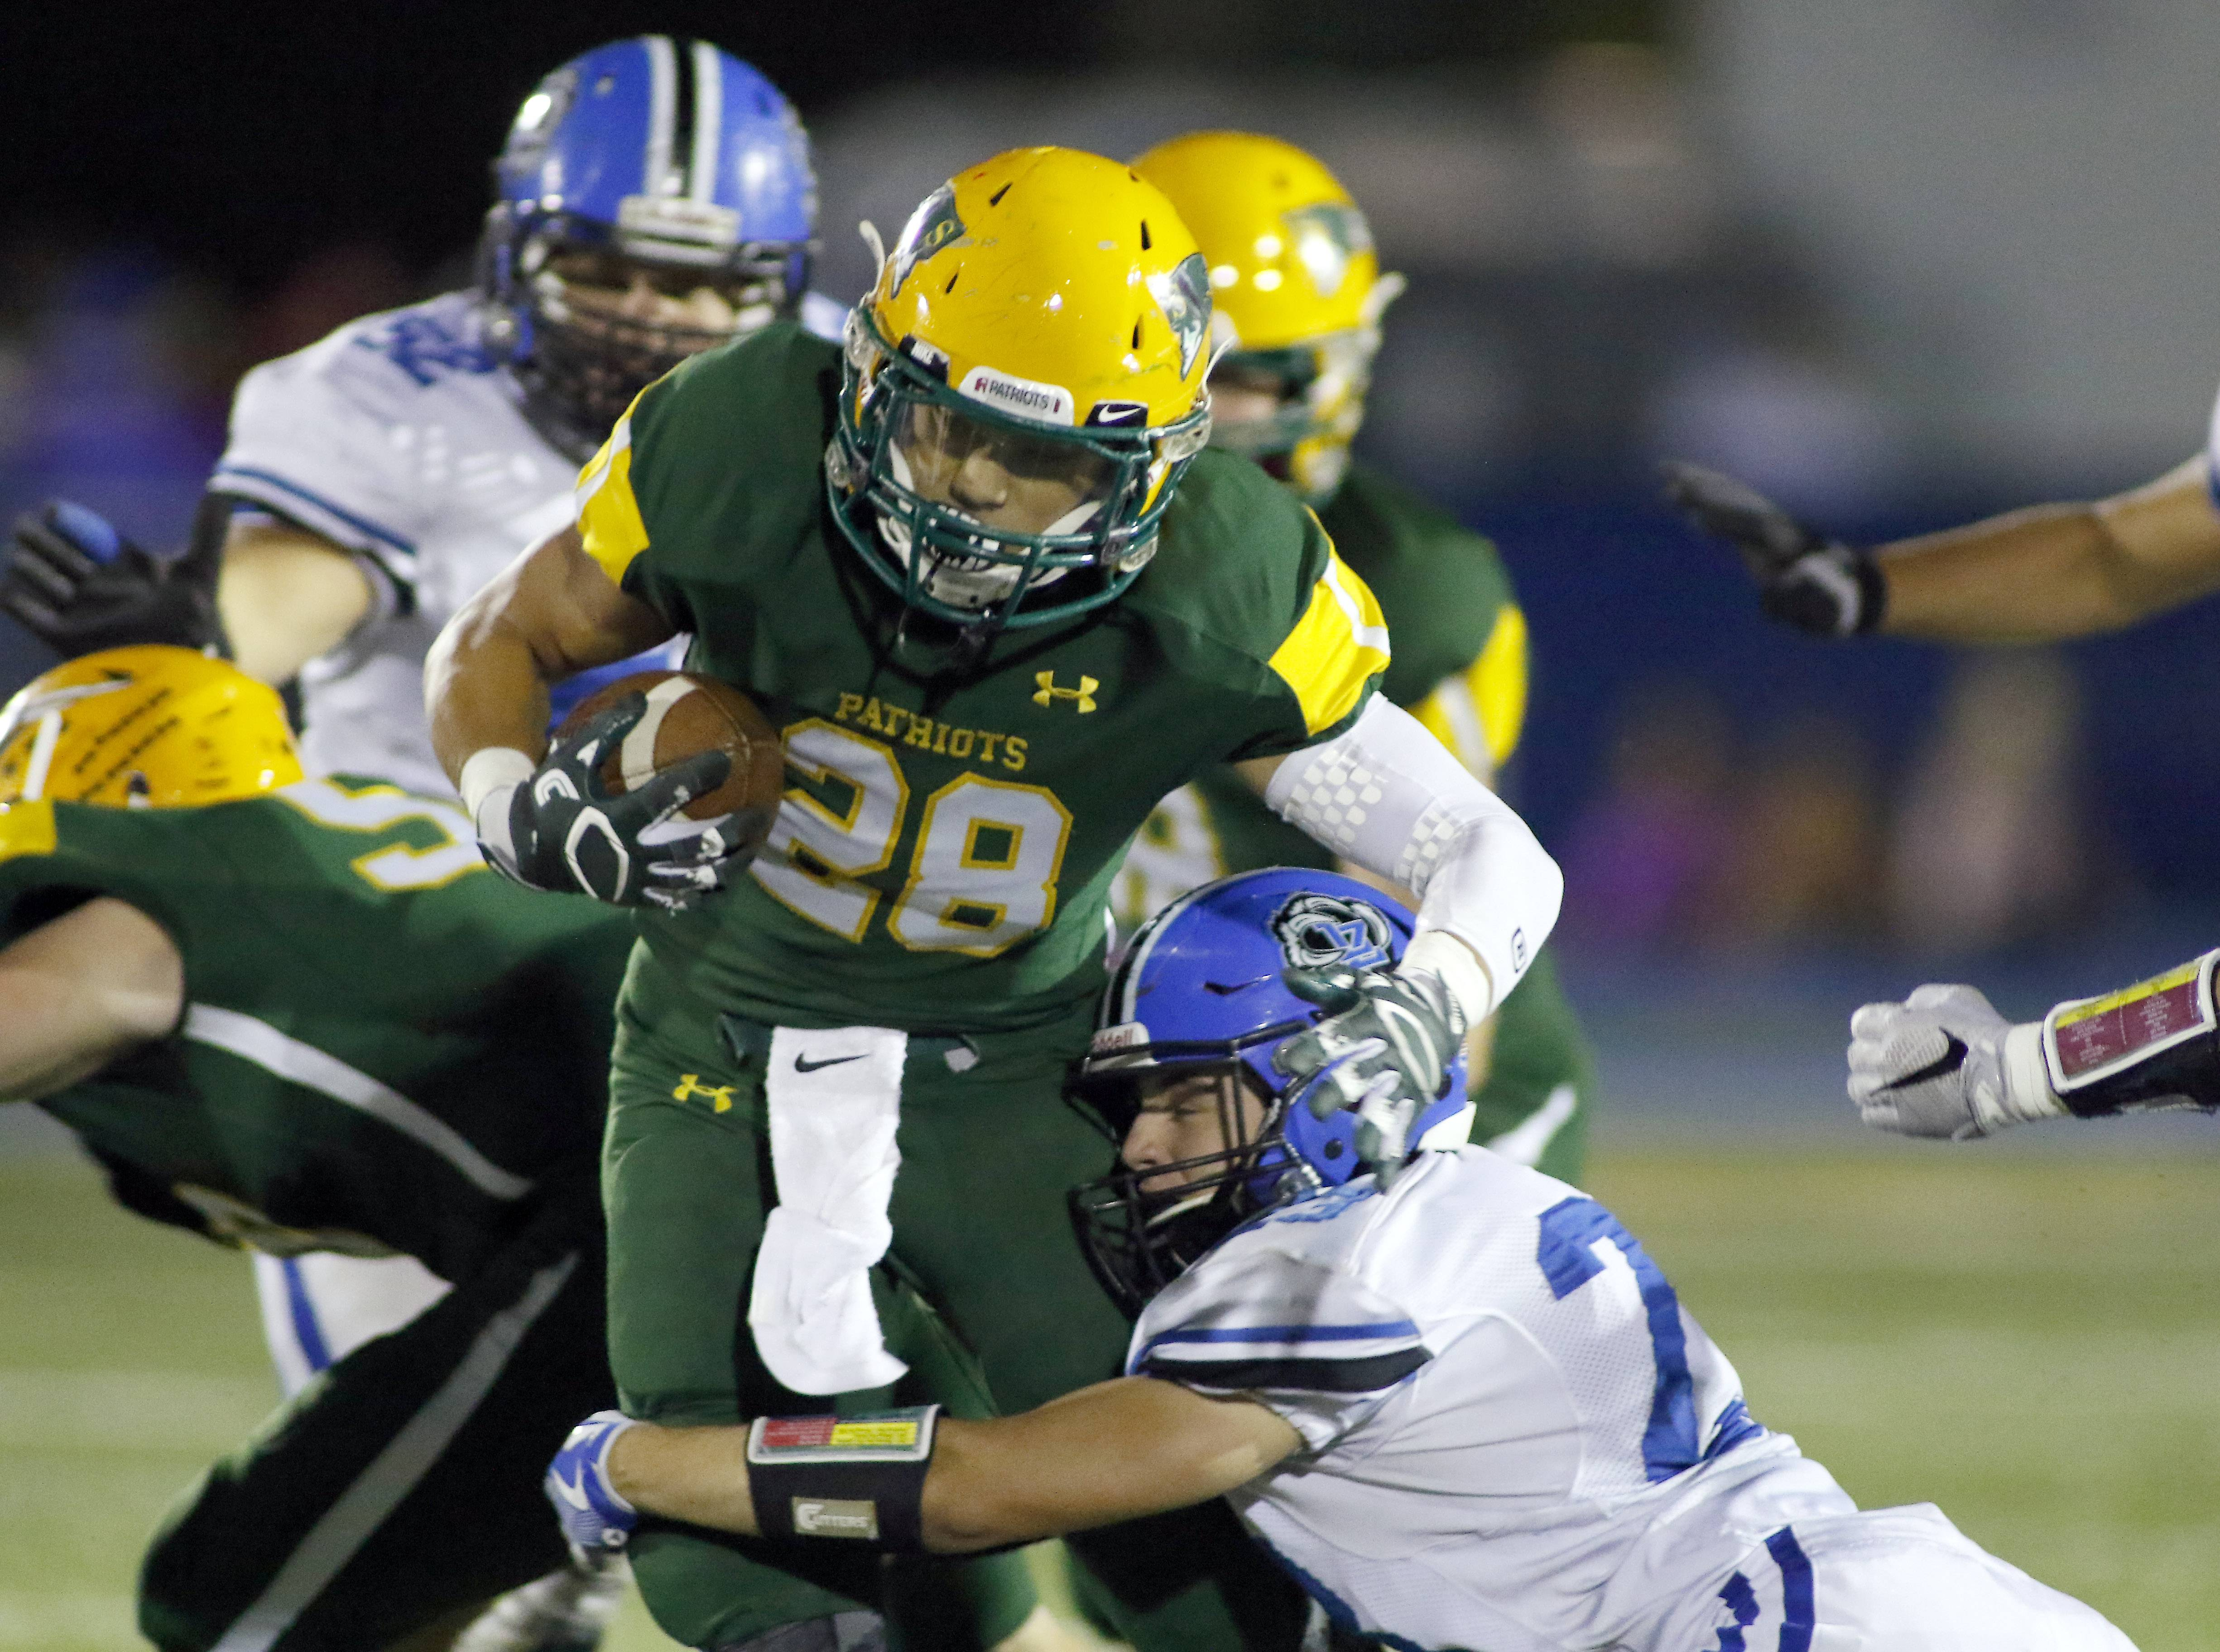 Images: Lake Zurich vs. Stevenson football